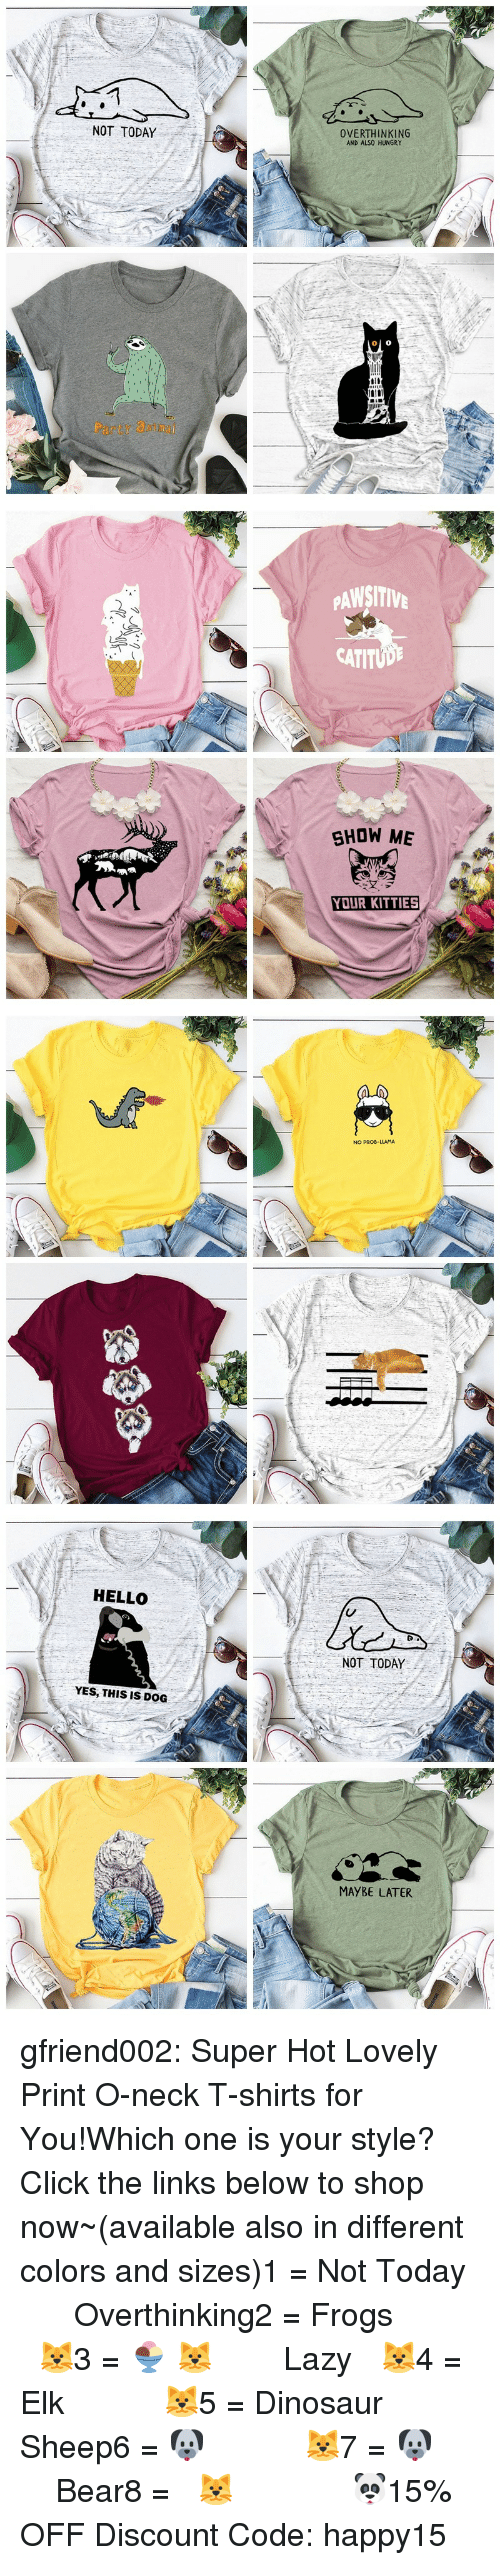 links: NOT TODAY  OVERTHINKING  AND ALSO HUNGRY  Party atm   PAWSITIV  CATITUD  SHOW ME  YOUR KITTIES   NO PROD-LLAMA   HELLO  NOT TODAY  YES, THIS IS DOG  MAYBE LATER gfriend002:  Super Hot Lovely Print O-neck T-shirts for You!Which one is your style? Click the links below to shop now~(available also in different colors and sizes)1 = Not Today  ☆★  Overthinking2 = Frogs   ☆★  🐱3 = 🍨 🐱  ☆★  Lazy 🐱4 = Elk   ☆★  🐱5 = Dinosaur  ☆★  Sheep6 = 🐶   ☆★  🐱7 = 🐶   ☆★  Bear8 = 🐱    ☆★  🐼15% OFF Discount Code: happy15